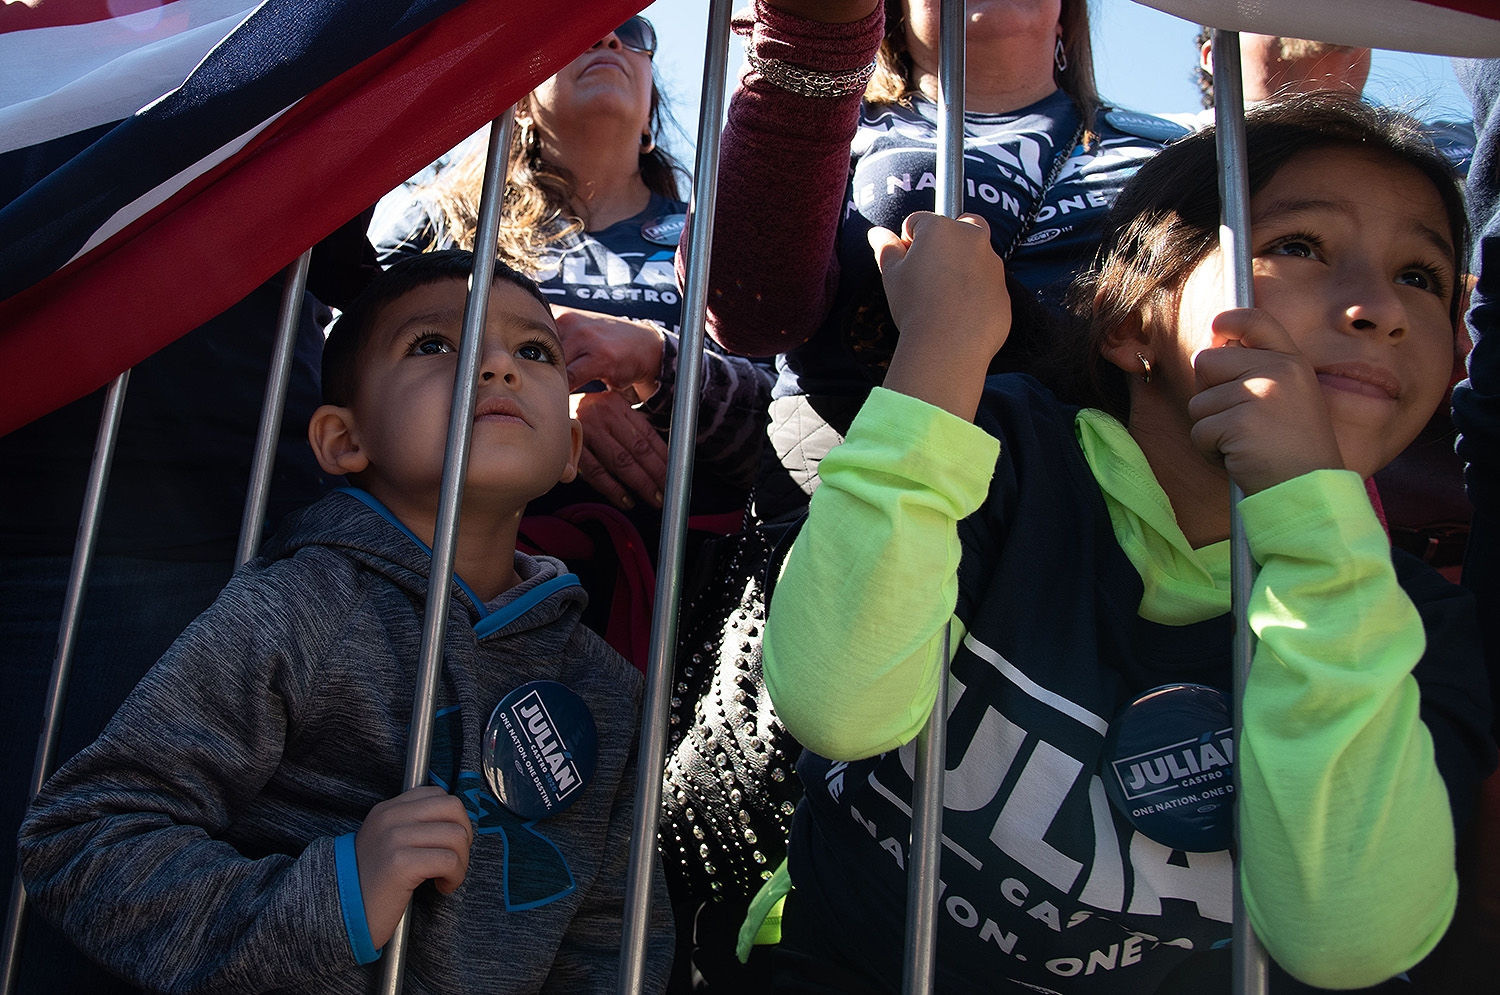 Nathan Guerrero, 3, and Sophia Guerrero, 6, listen to former San Antonio Mayor Julián Castro as he announces his run for president in the 2020 election Saturday morning at Plaza Guadalupe. Photo: V. Finster | Heron contributor